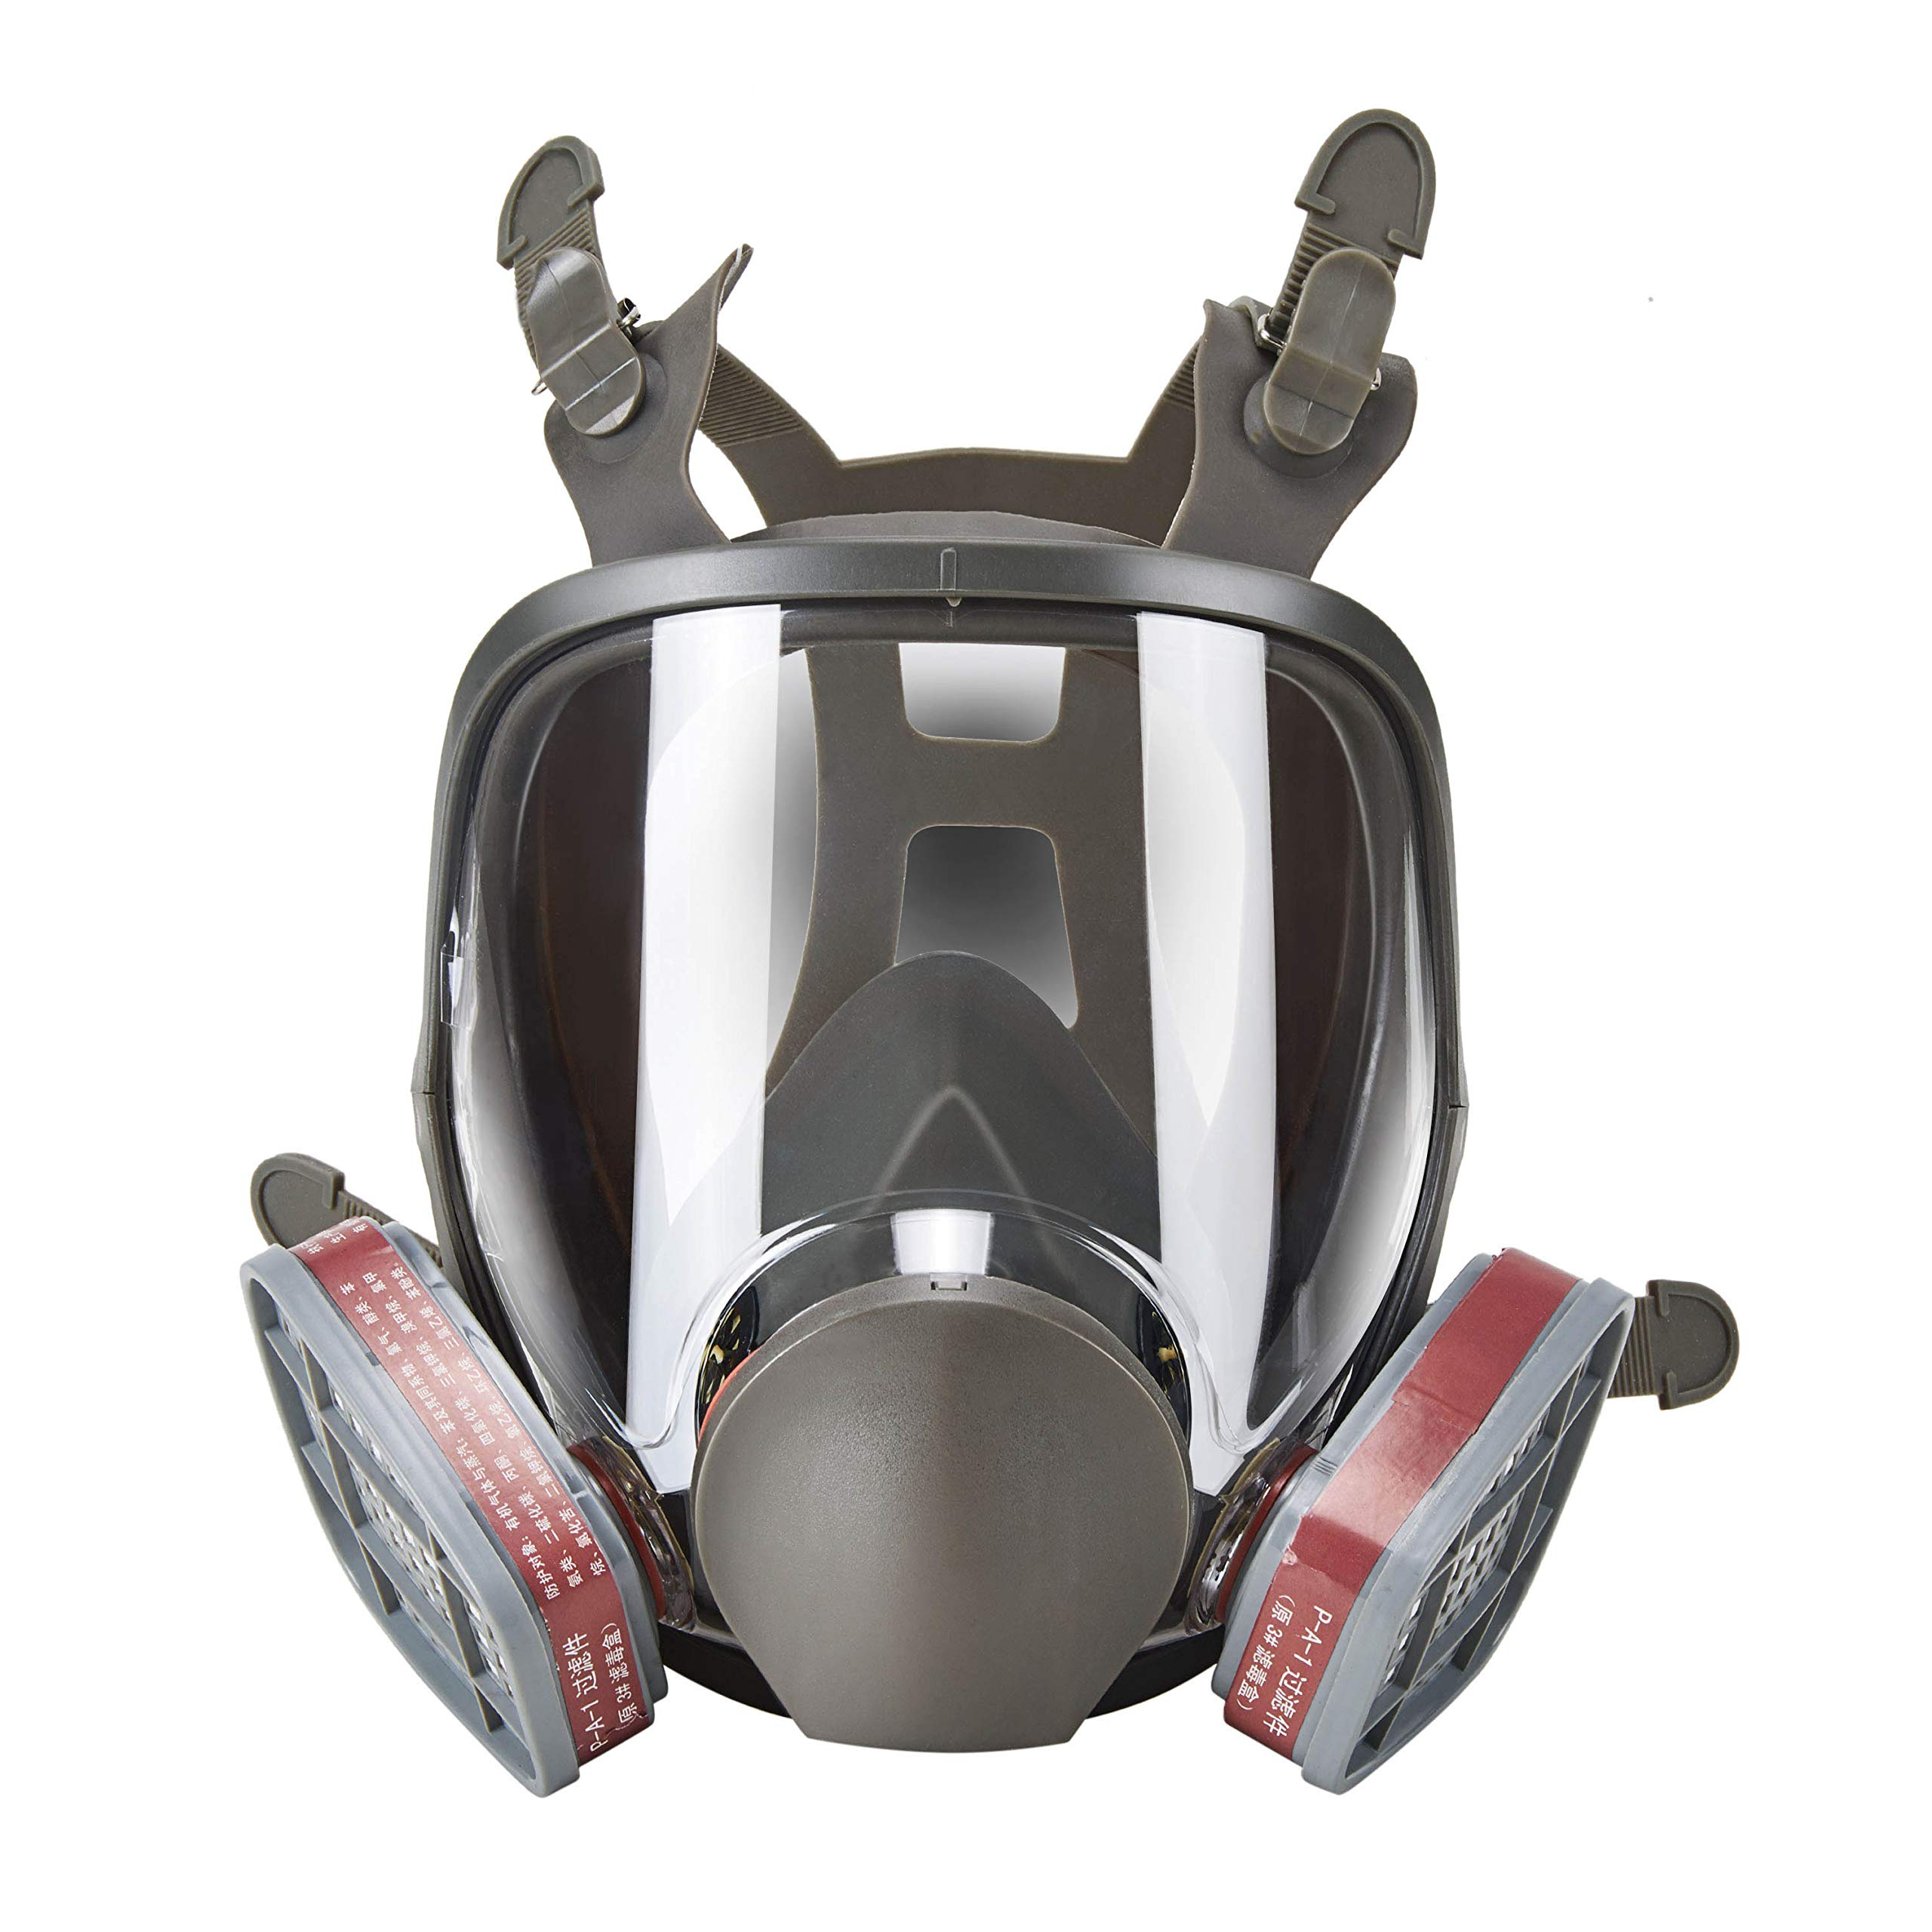 Holulo Full Face Facepiece Respirator Paint Spray Mask with 2 x Organic Vapor Cartridges by Holulo (Image #8)